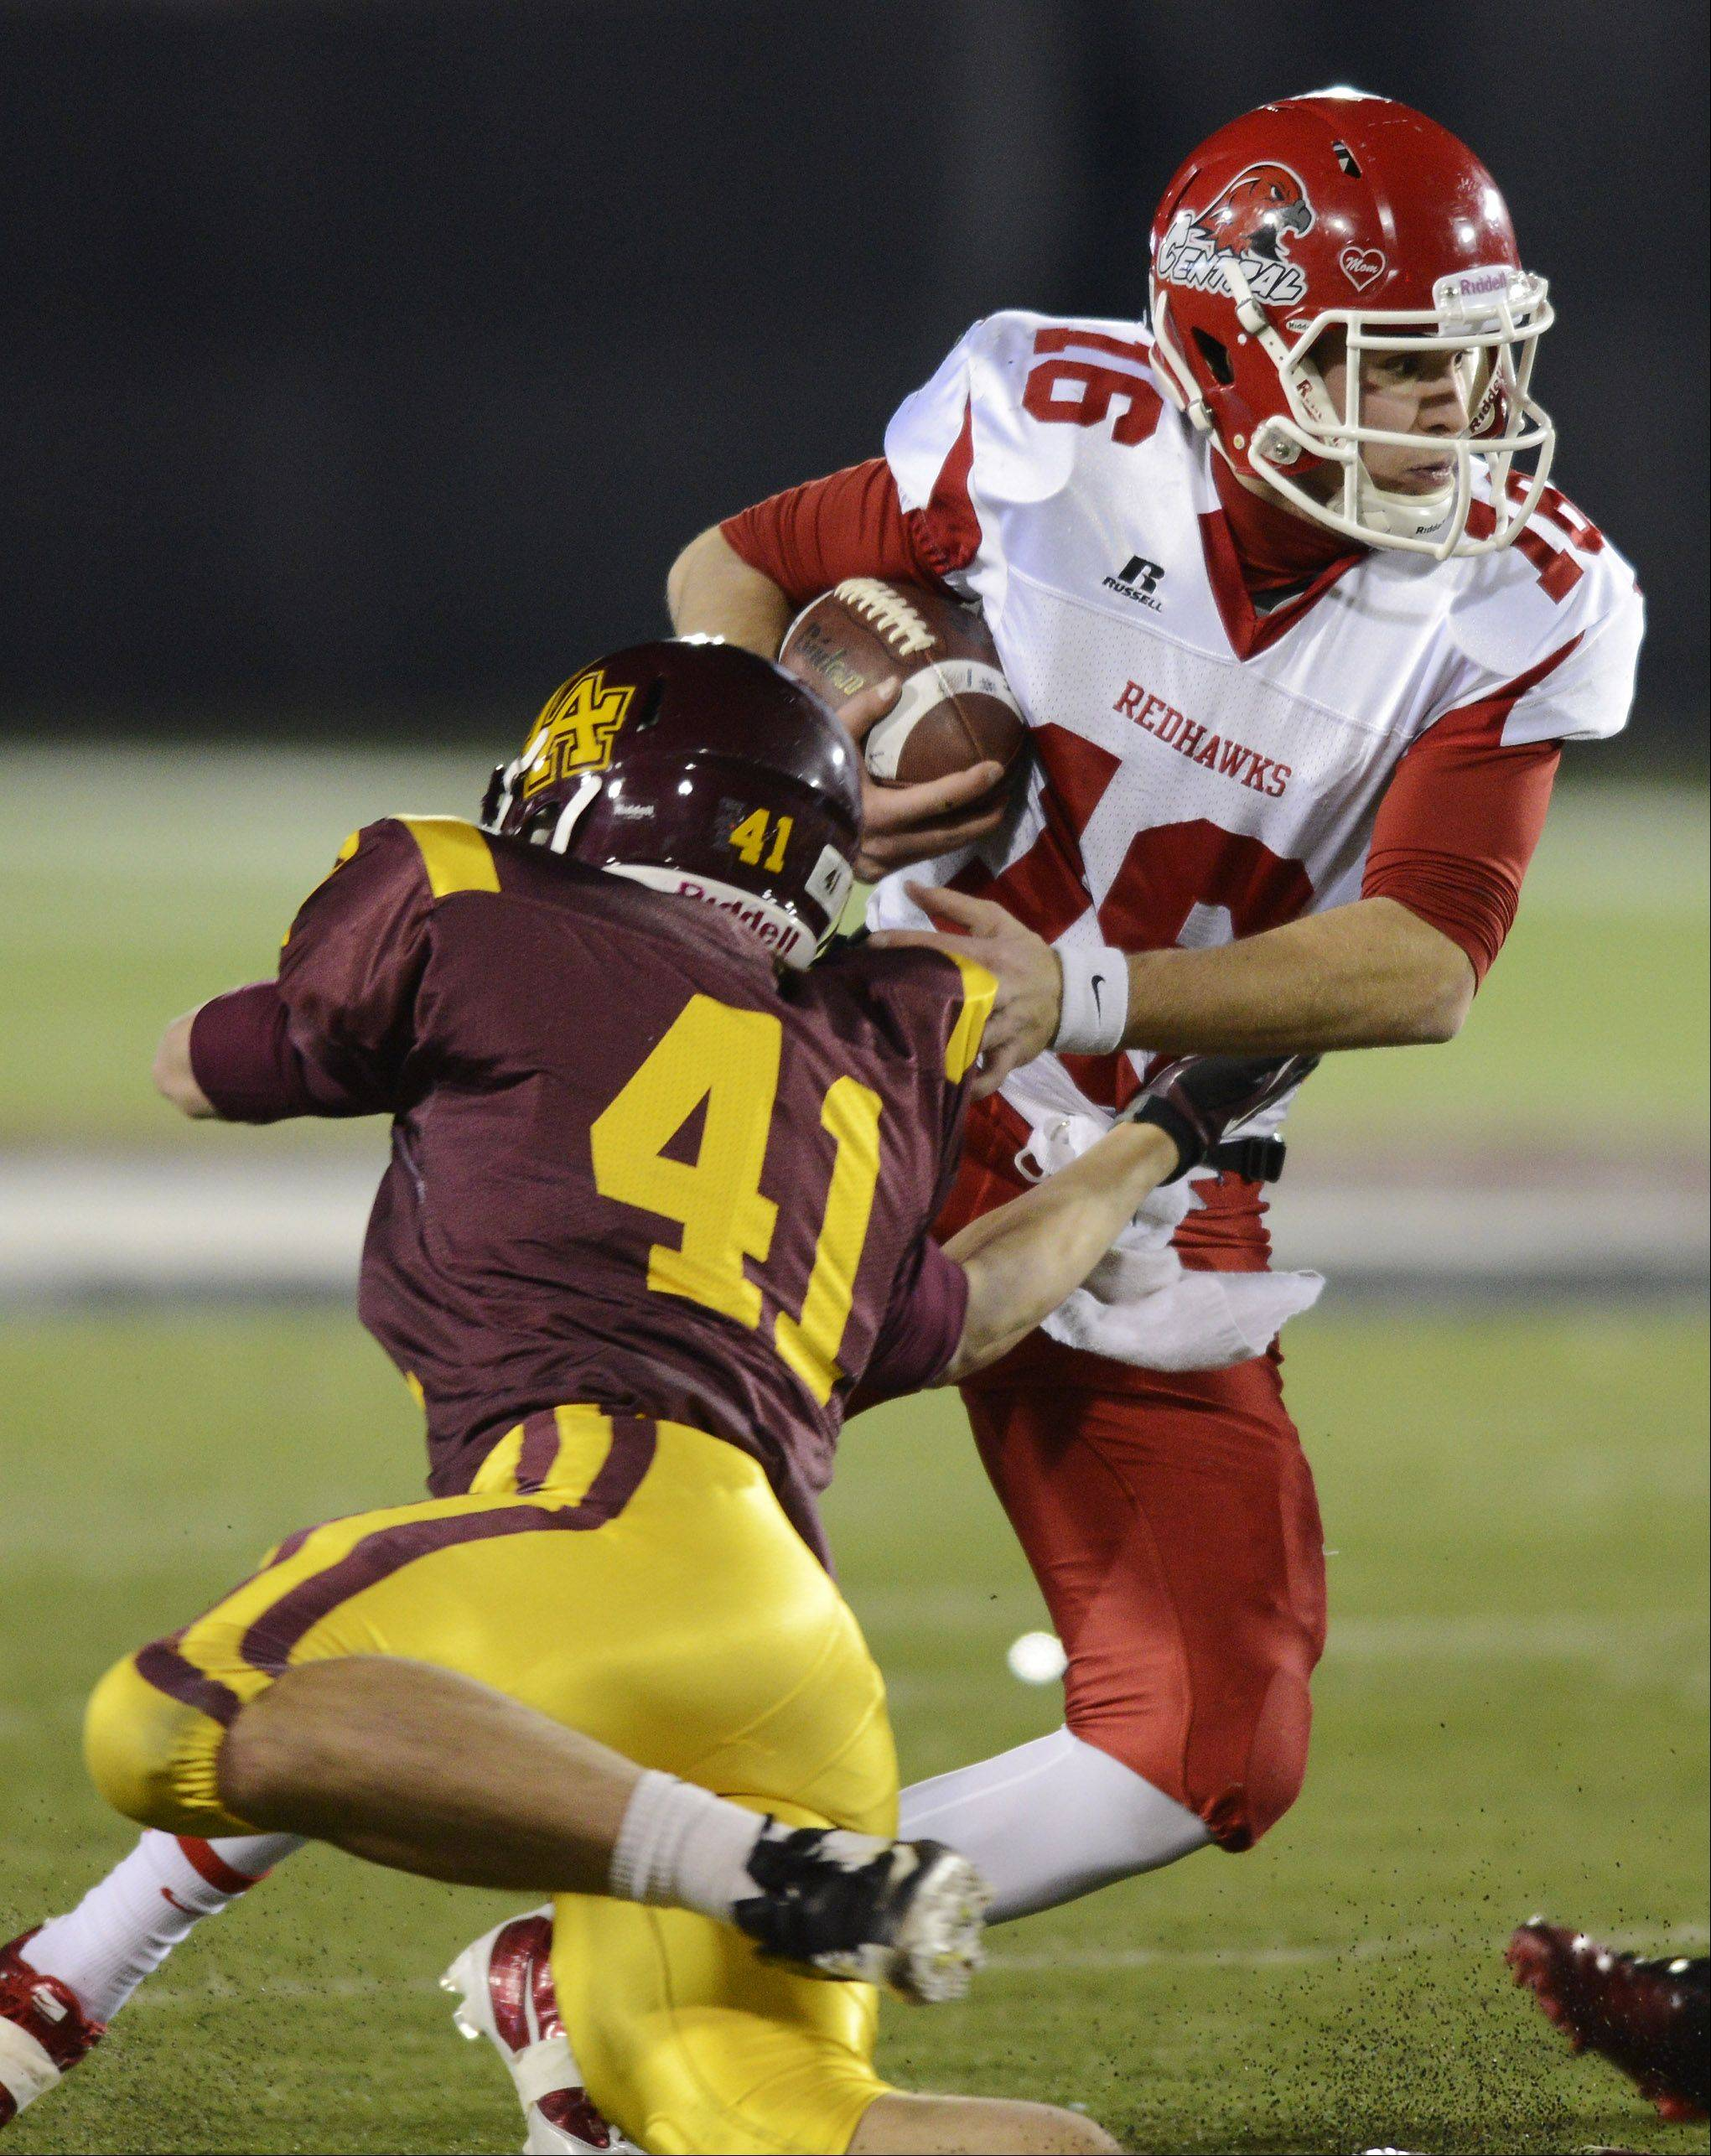 Naperville Central quarterback Jacob Kolbe escapes Loyola's Austin Lyons during the class 8A football final in DeKalb Saturday.